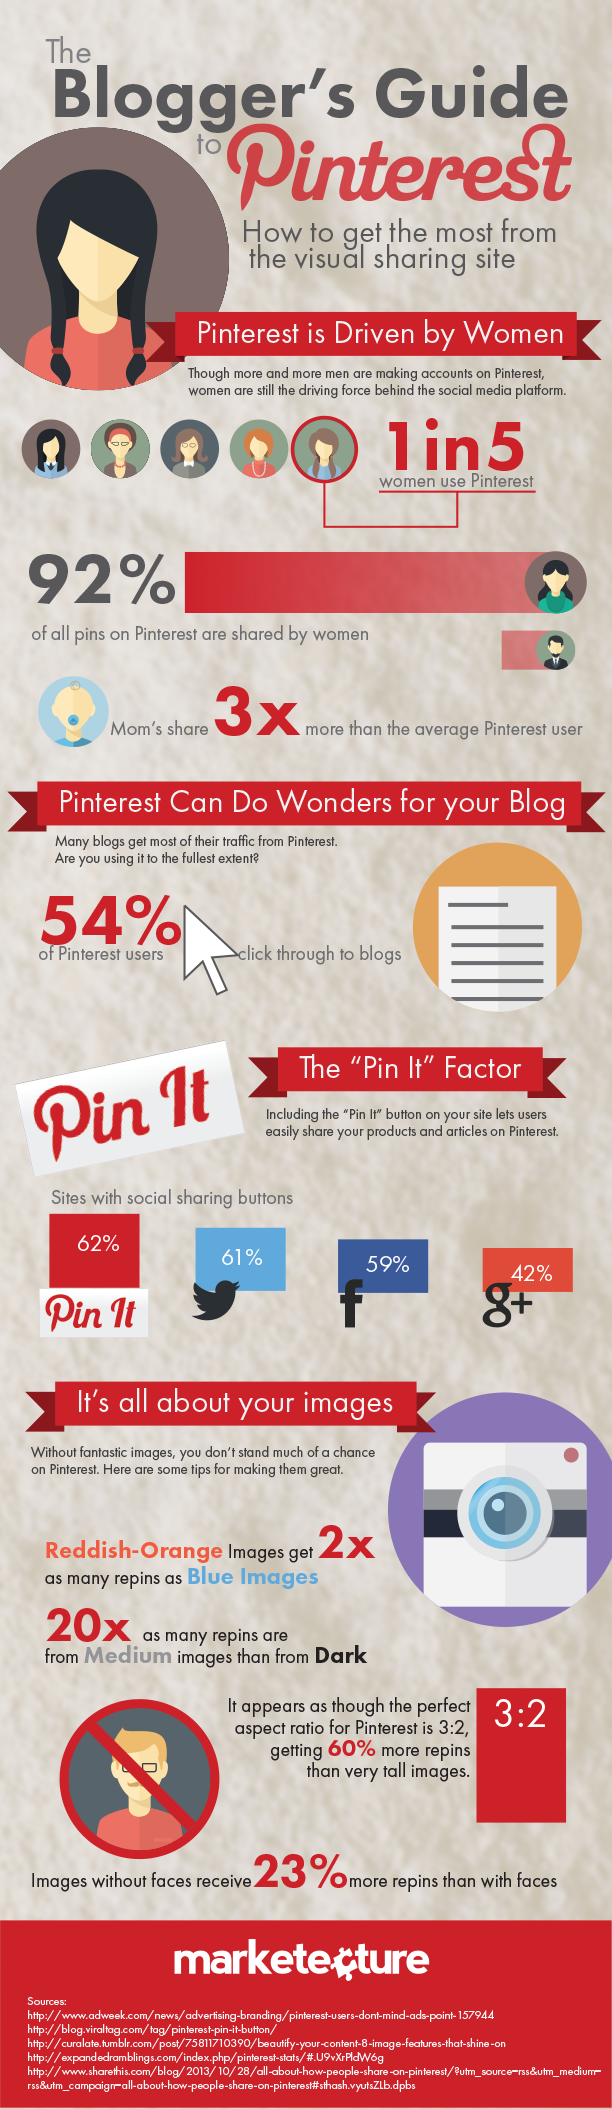 The Blogger's Guide to Pinterest